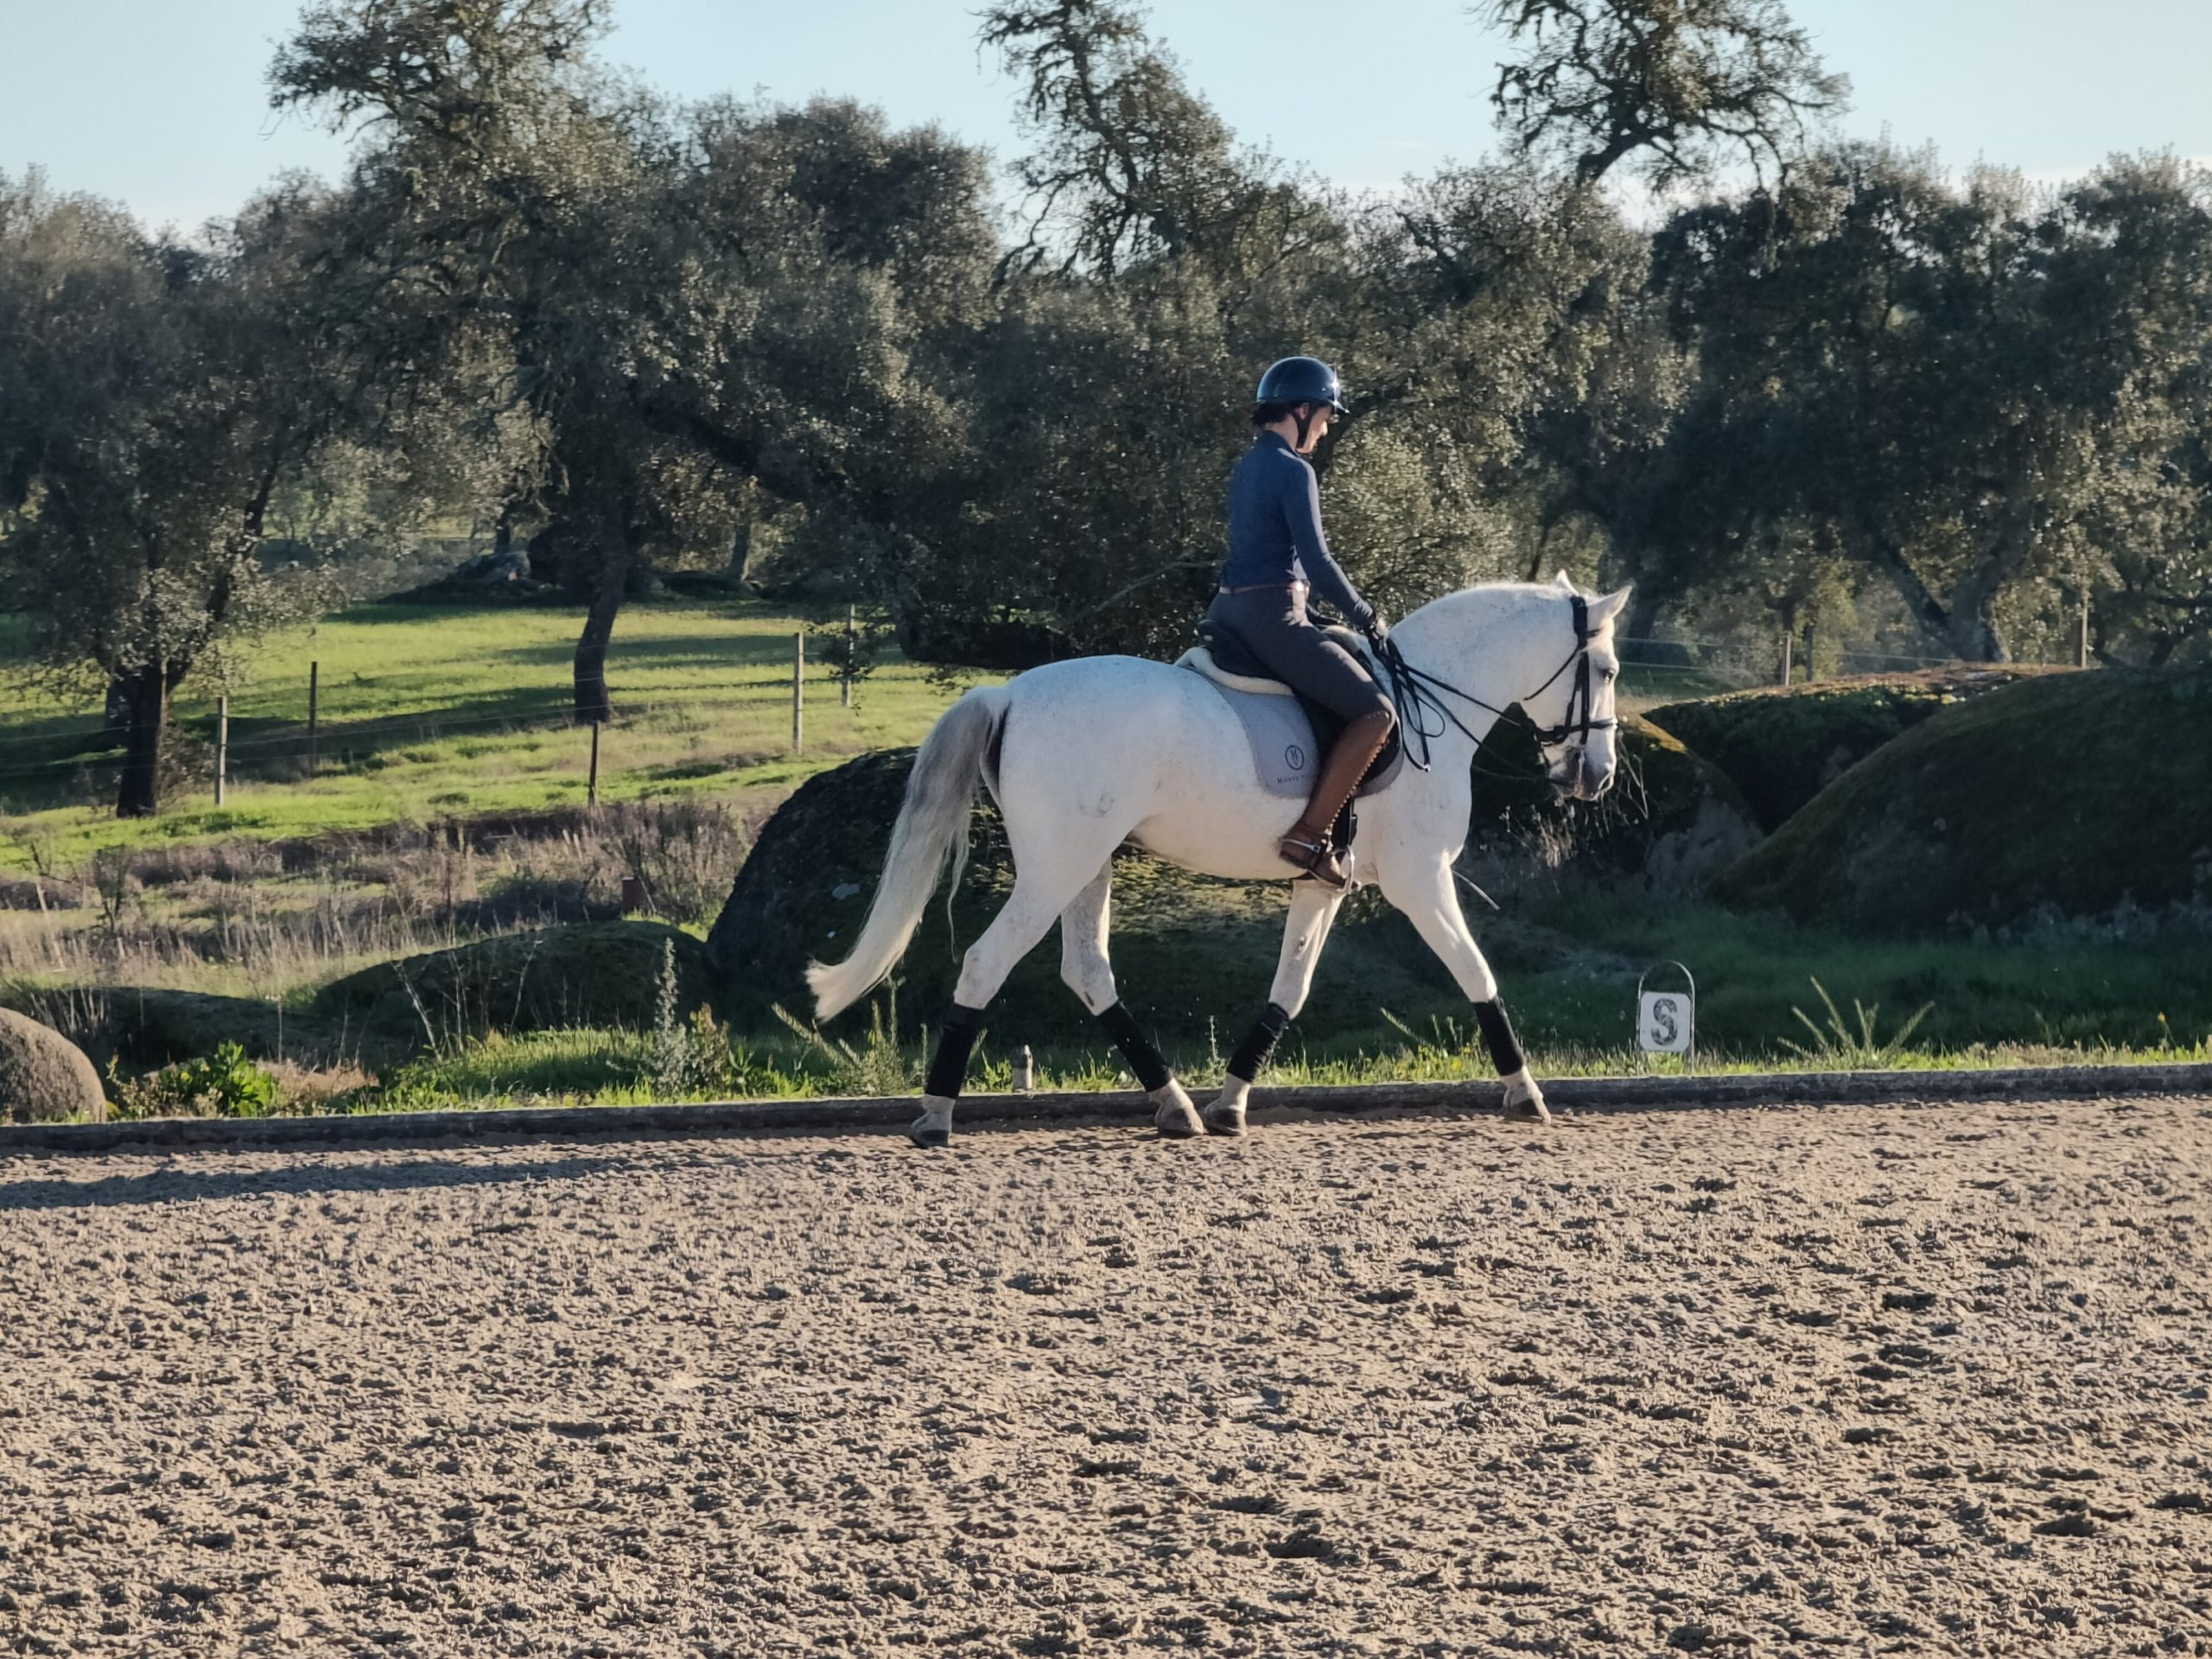 me riding Zig Zag in a double bridle during my stay at Monte Velho in Portugal